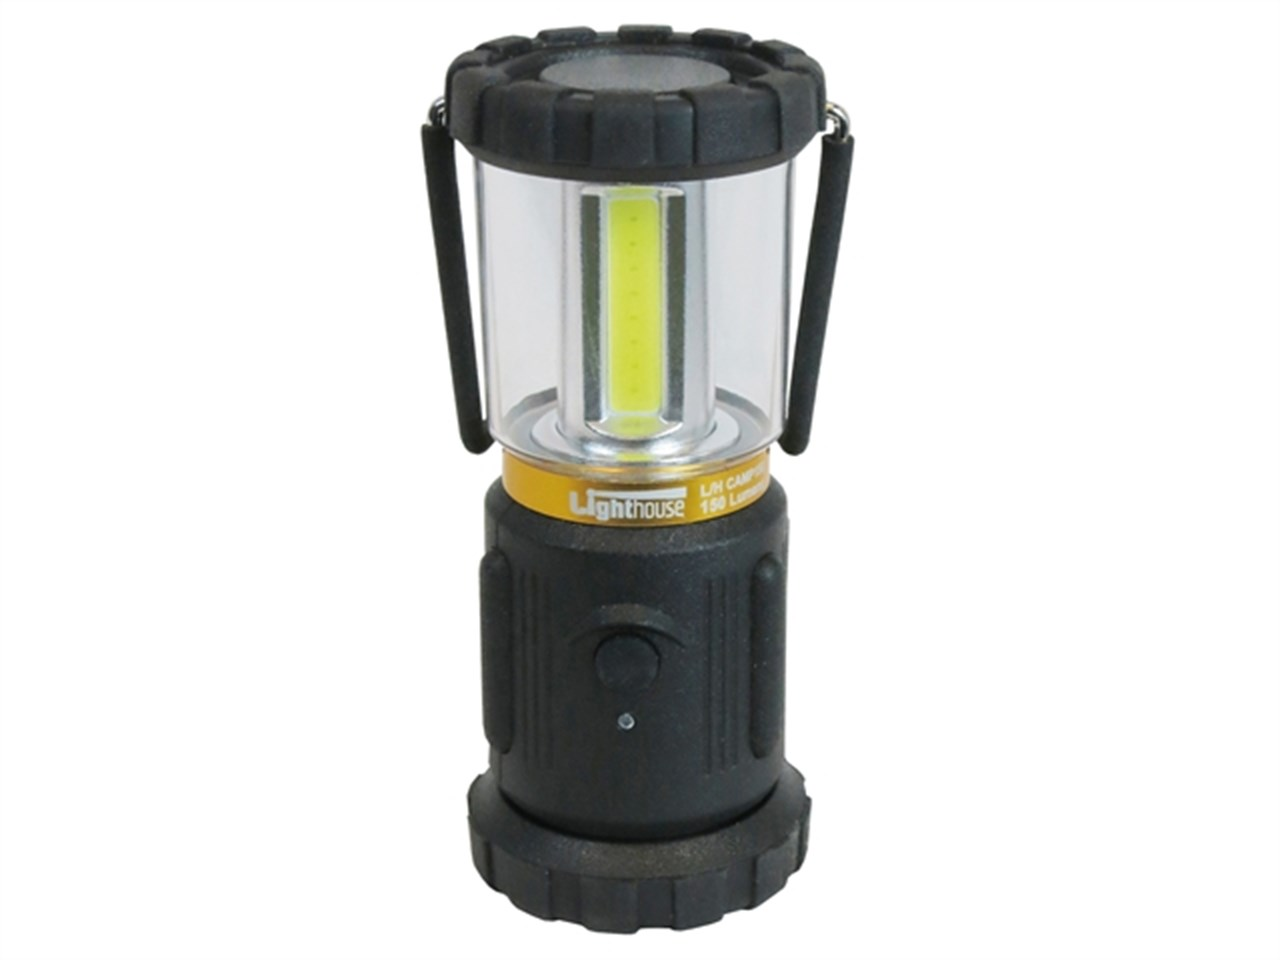 lighthouse l hcamp150 led mini camping lantern 150 lumens. Black Bedroom Furniture Sets. Home Design Ideas